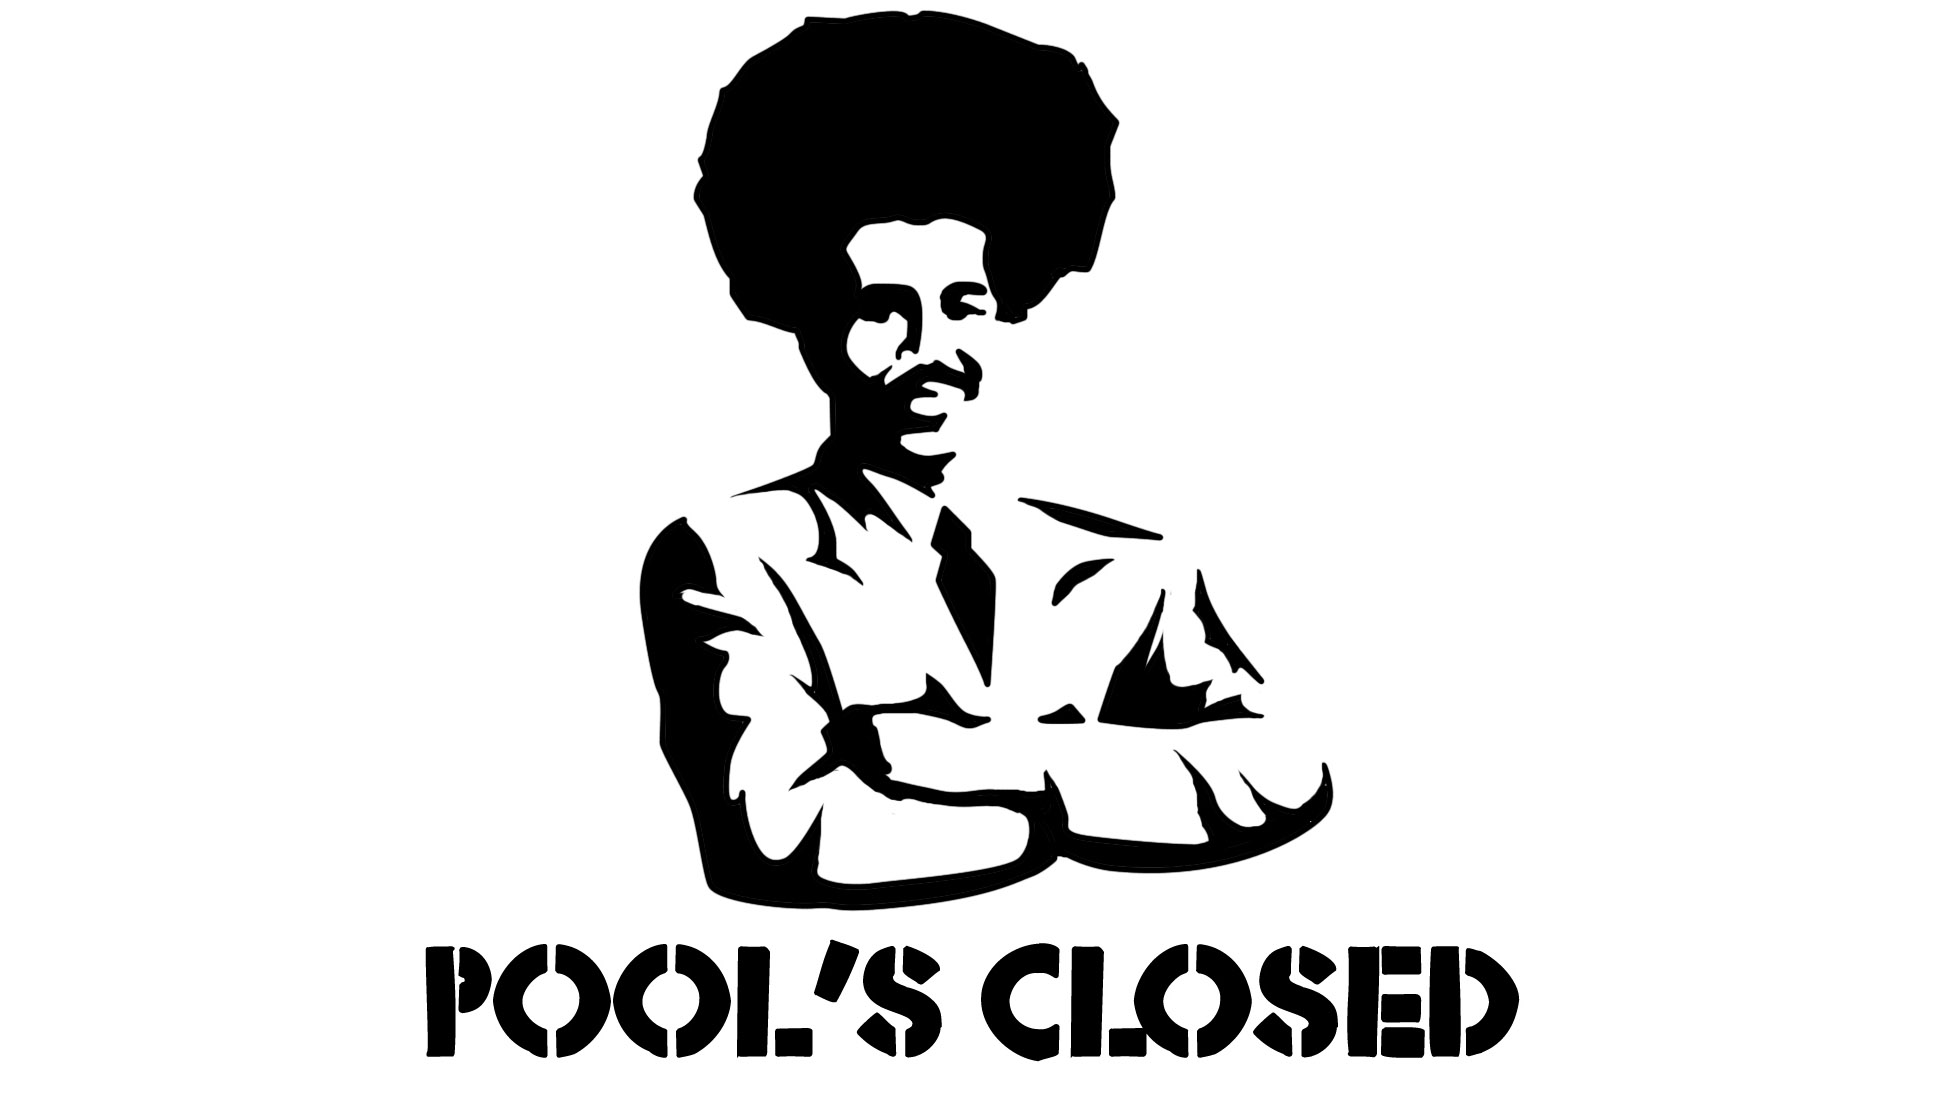 poolsclosed pool's closed know your meme,Pools Closed Meme